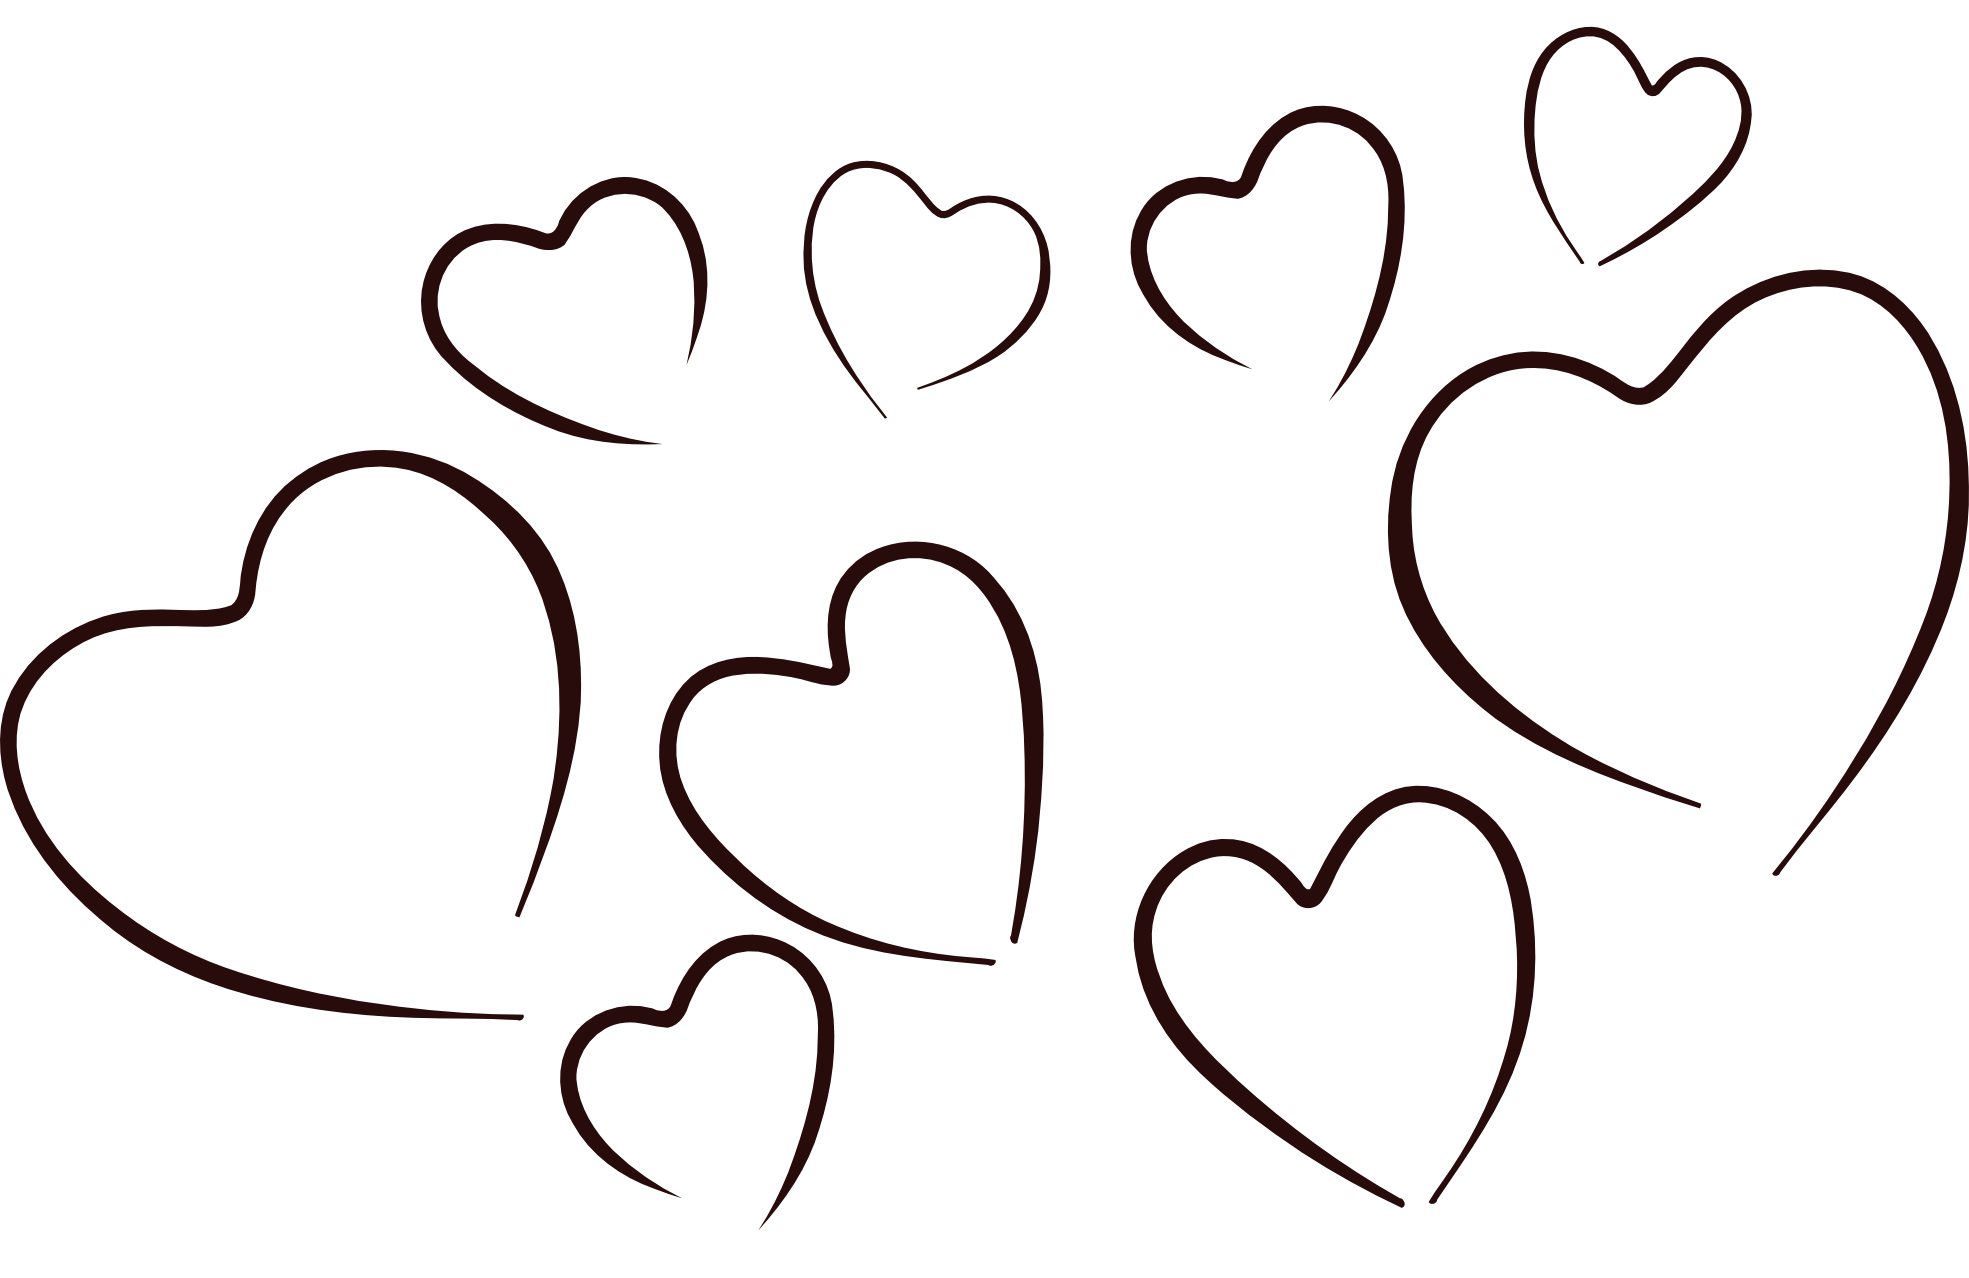 Heart black and white row of  - White Heart Clipart